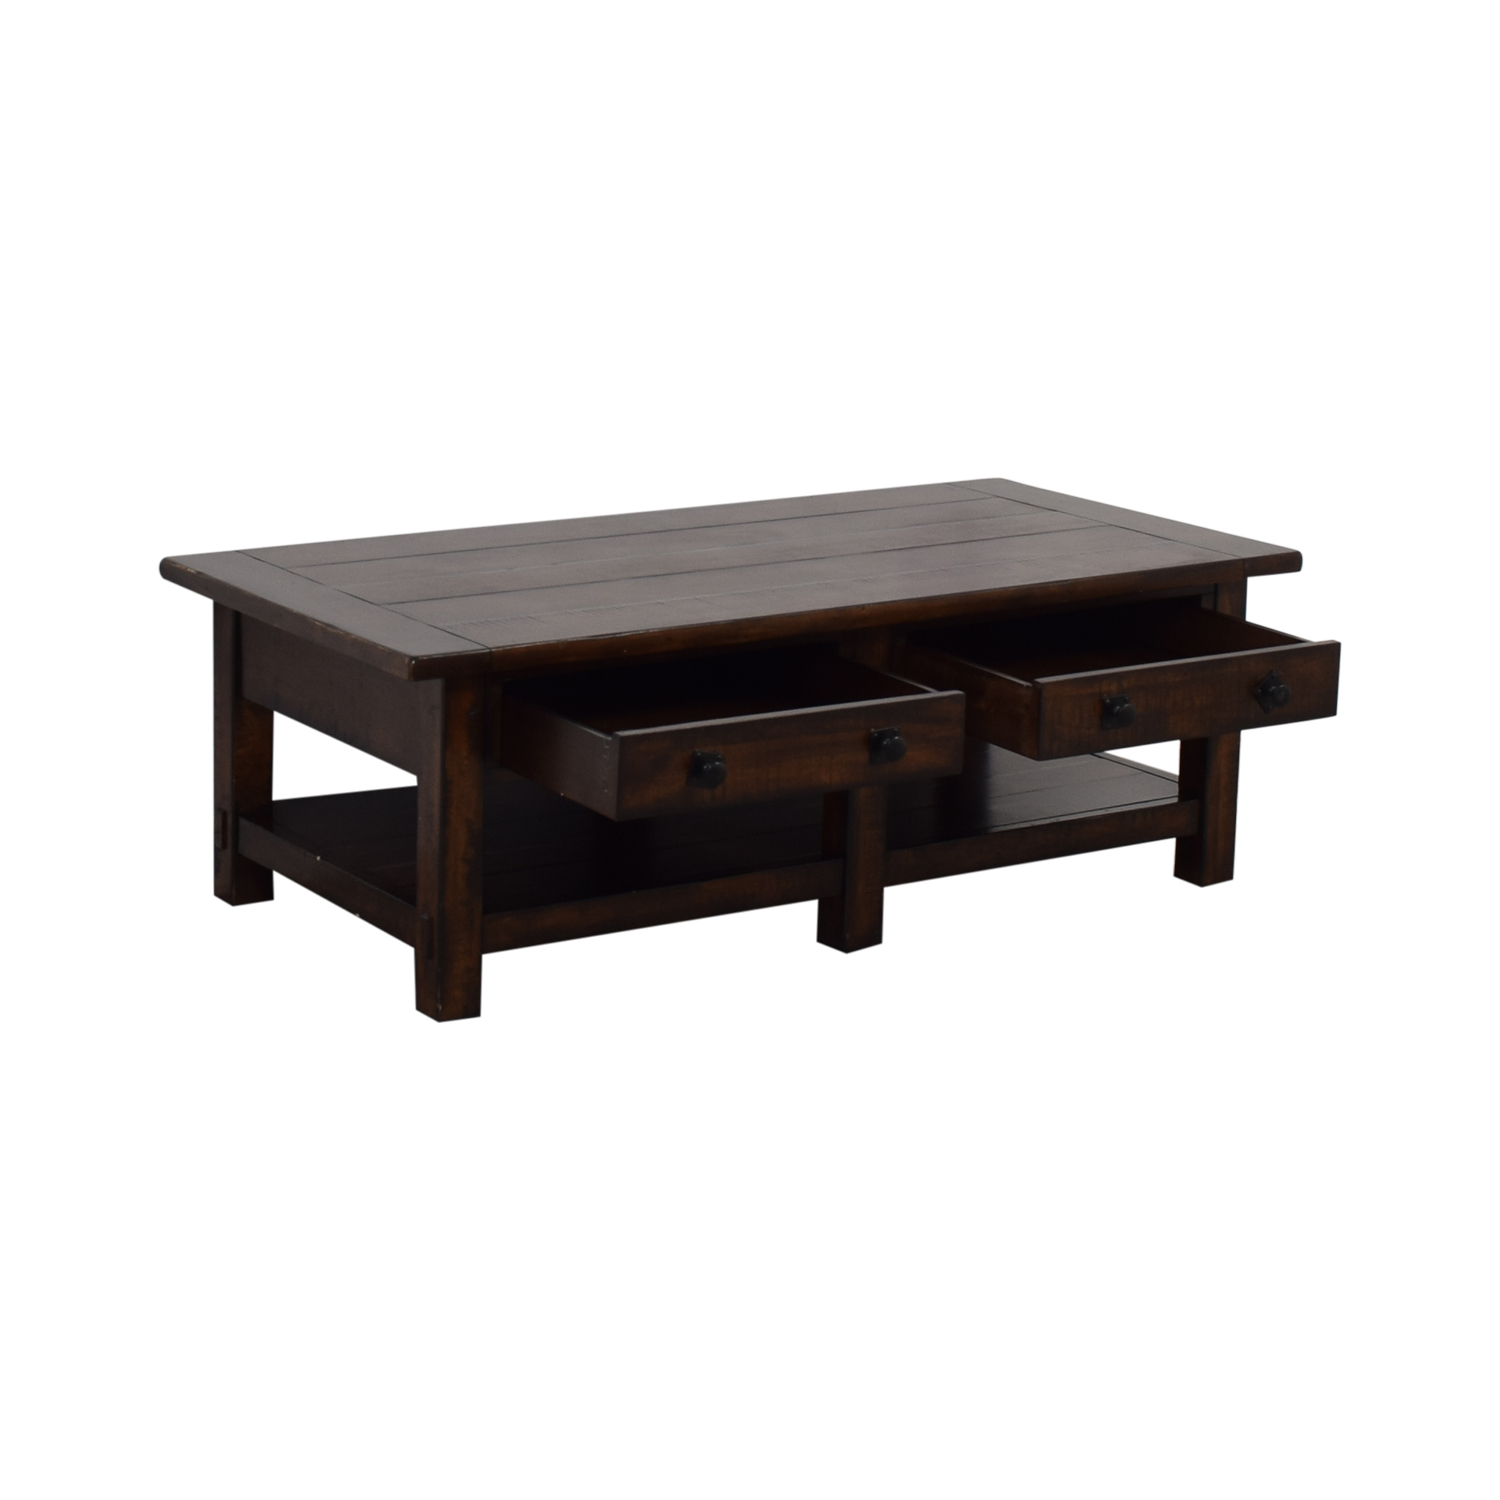 buy Pottery Barn Pottery Barn Benchwright Two-Drawer Coffee Table online